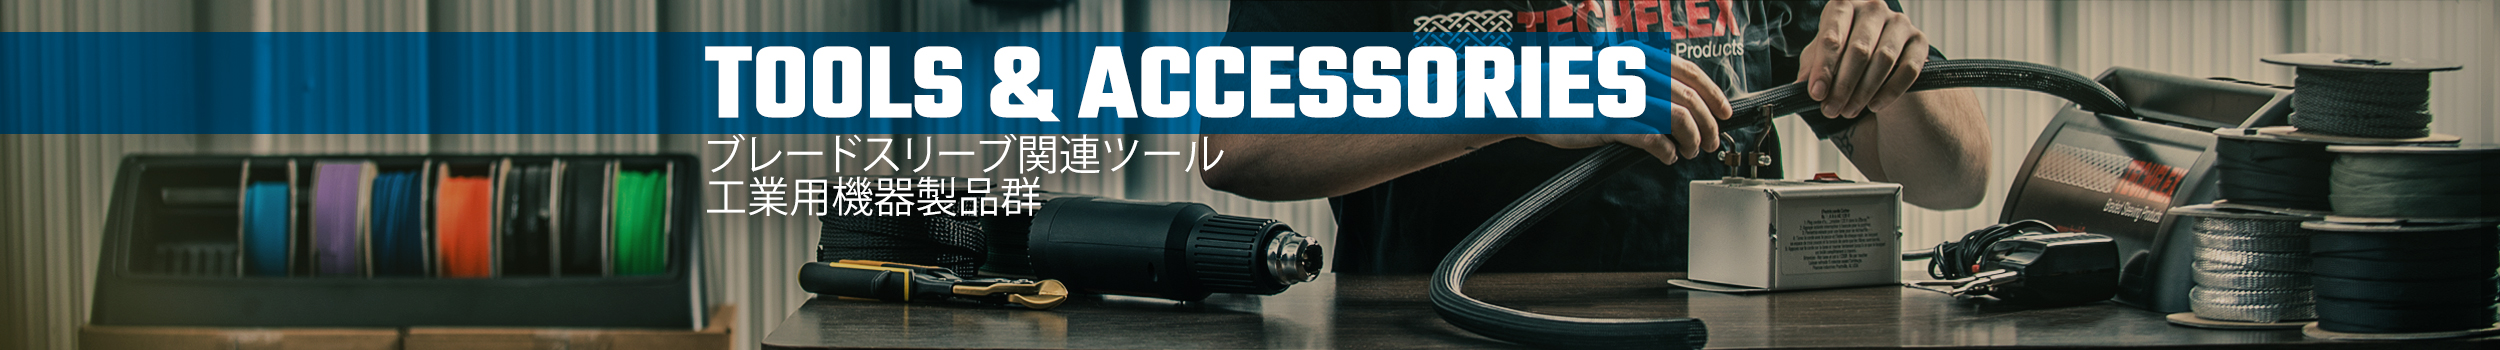 Tools accessories banner jp